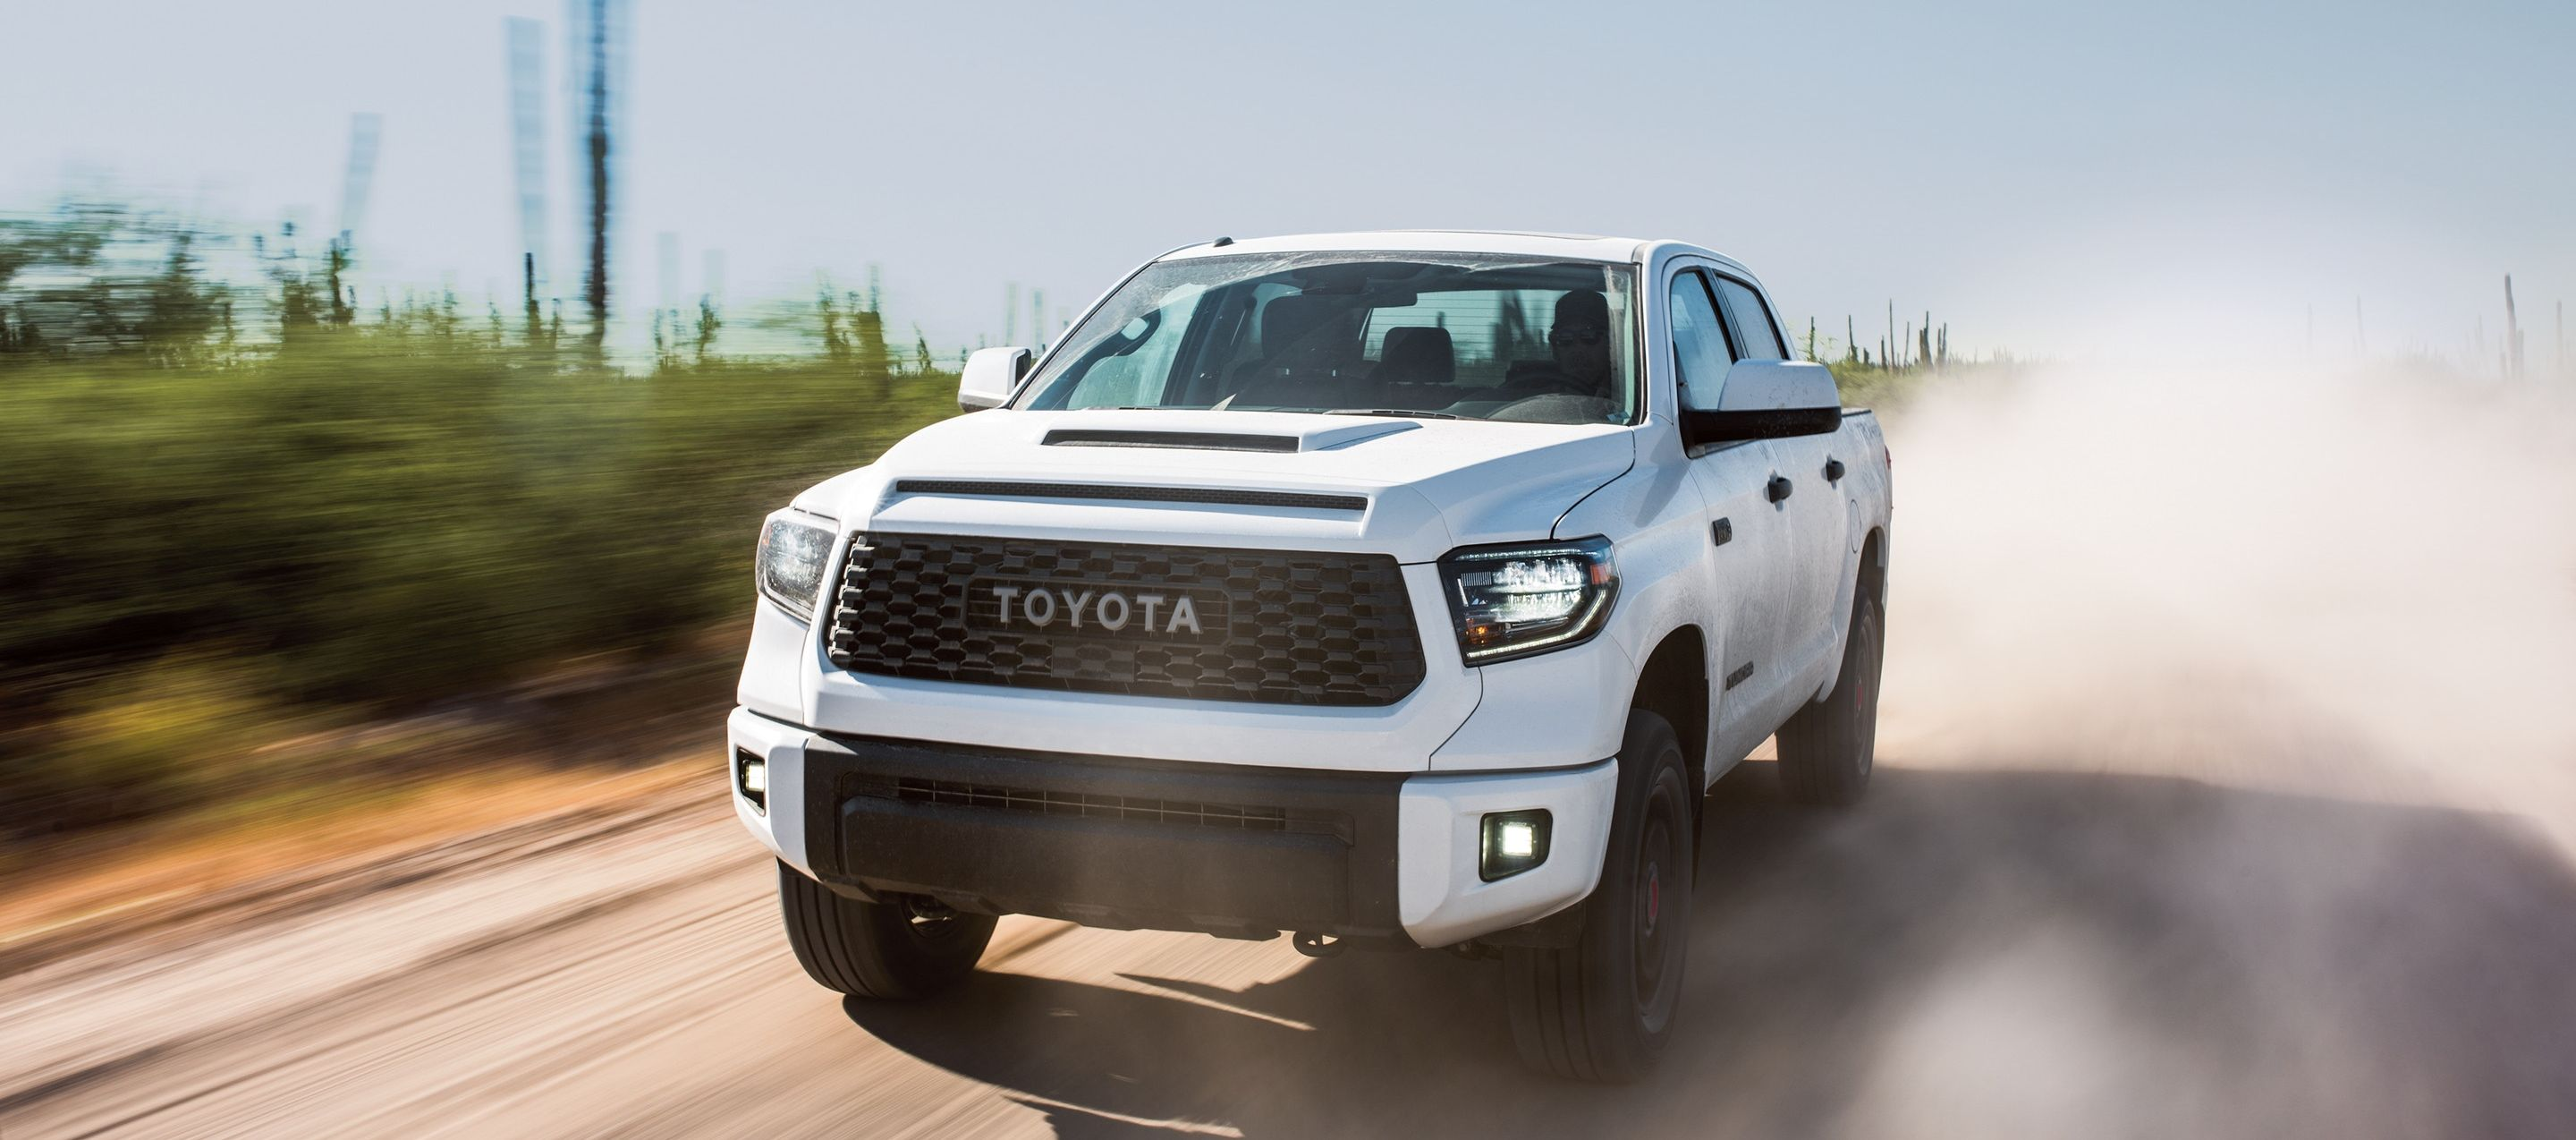 2019 Toyota Tundra Financing near West Des Moines, IA